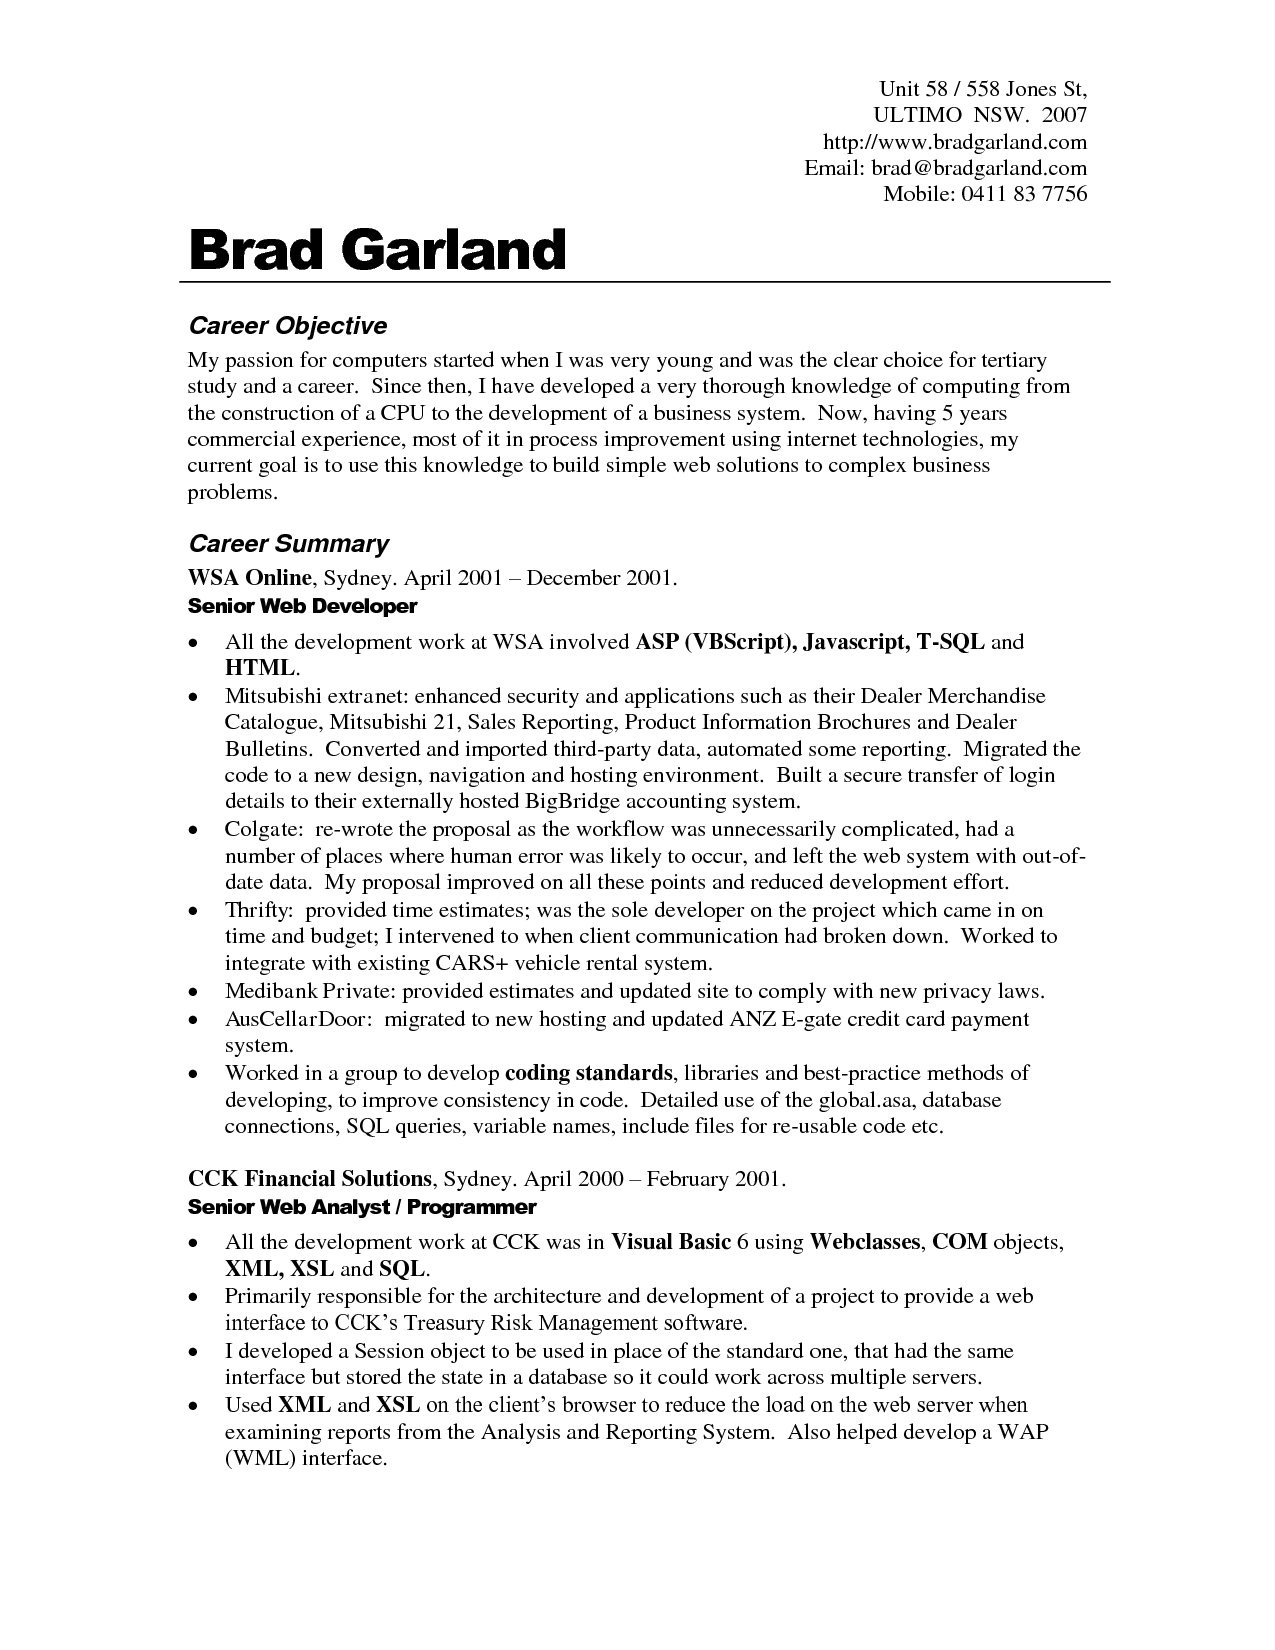 Career Objective On Resume Template Resume Objectives Examples Best Templateresume Objective Examples